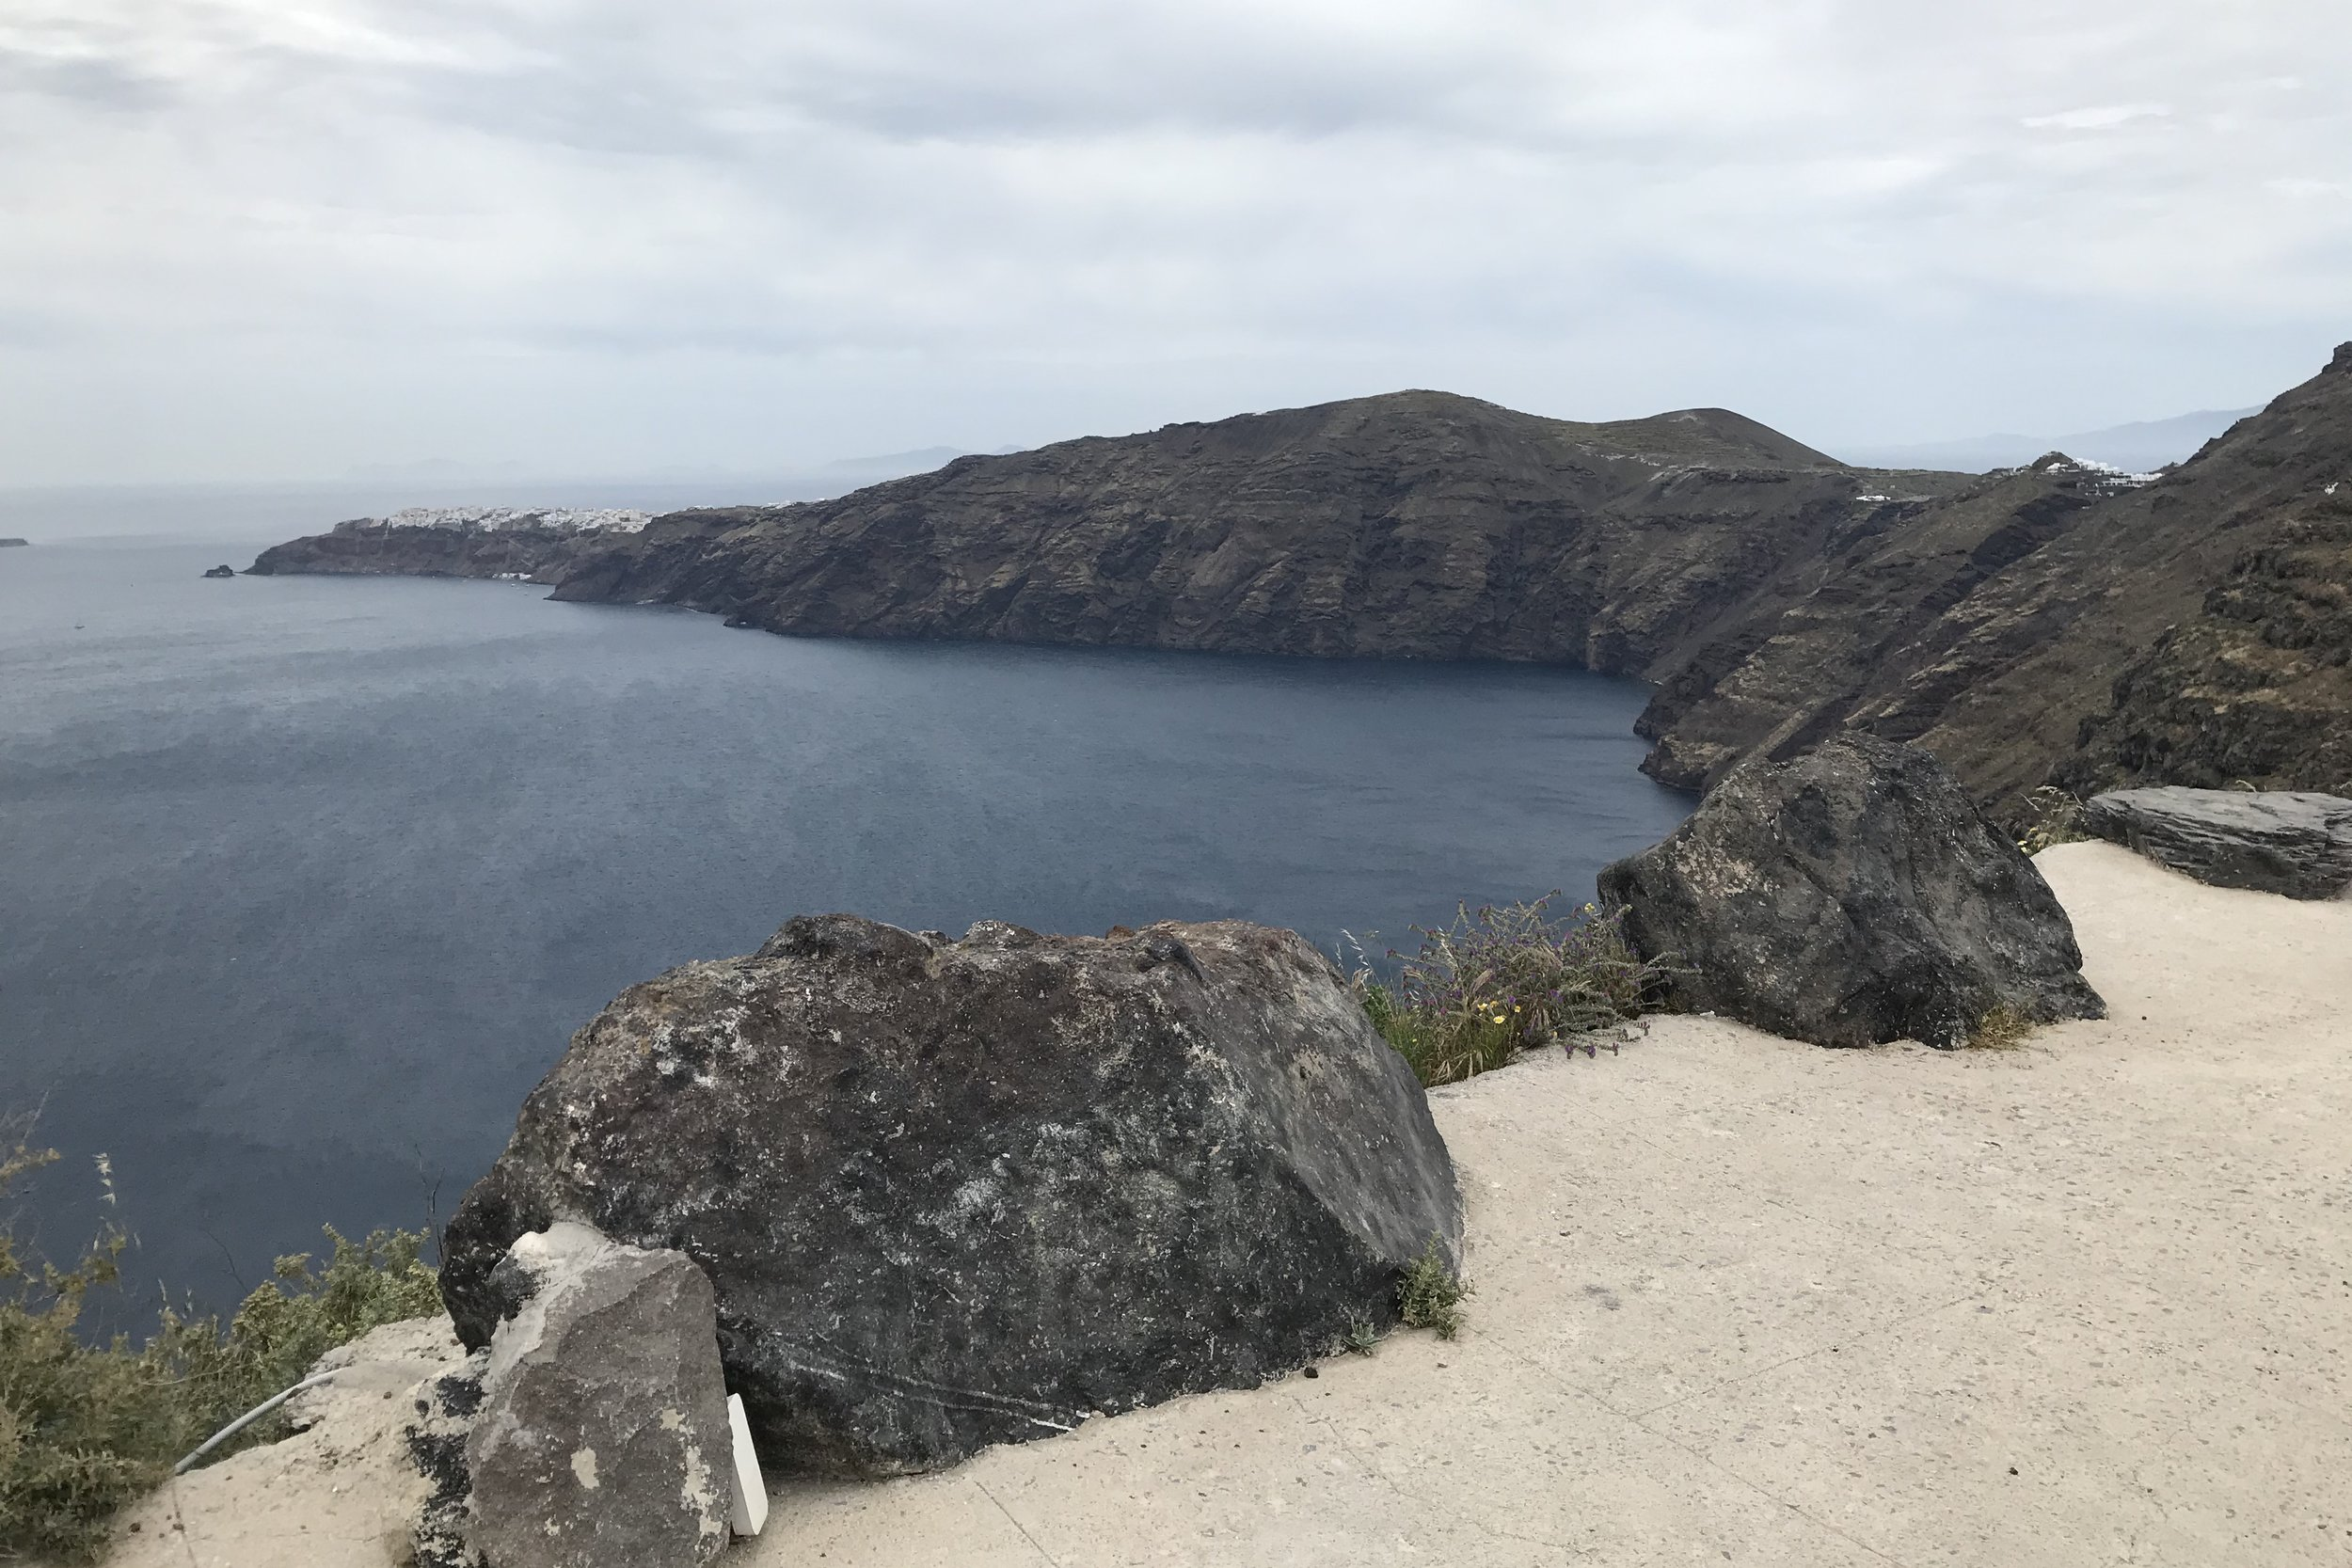 Hiking trail from Fira to Oia